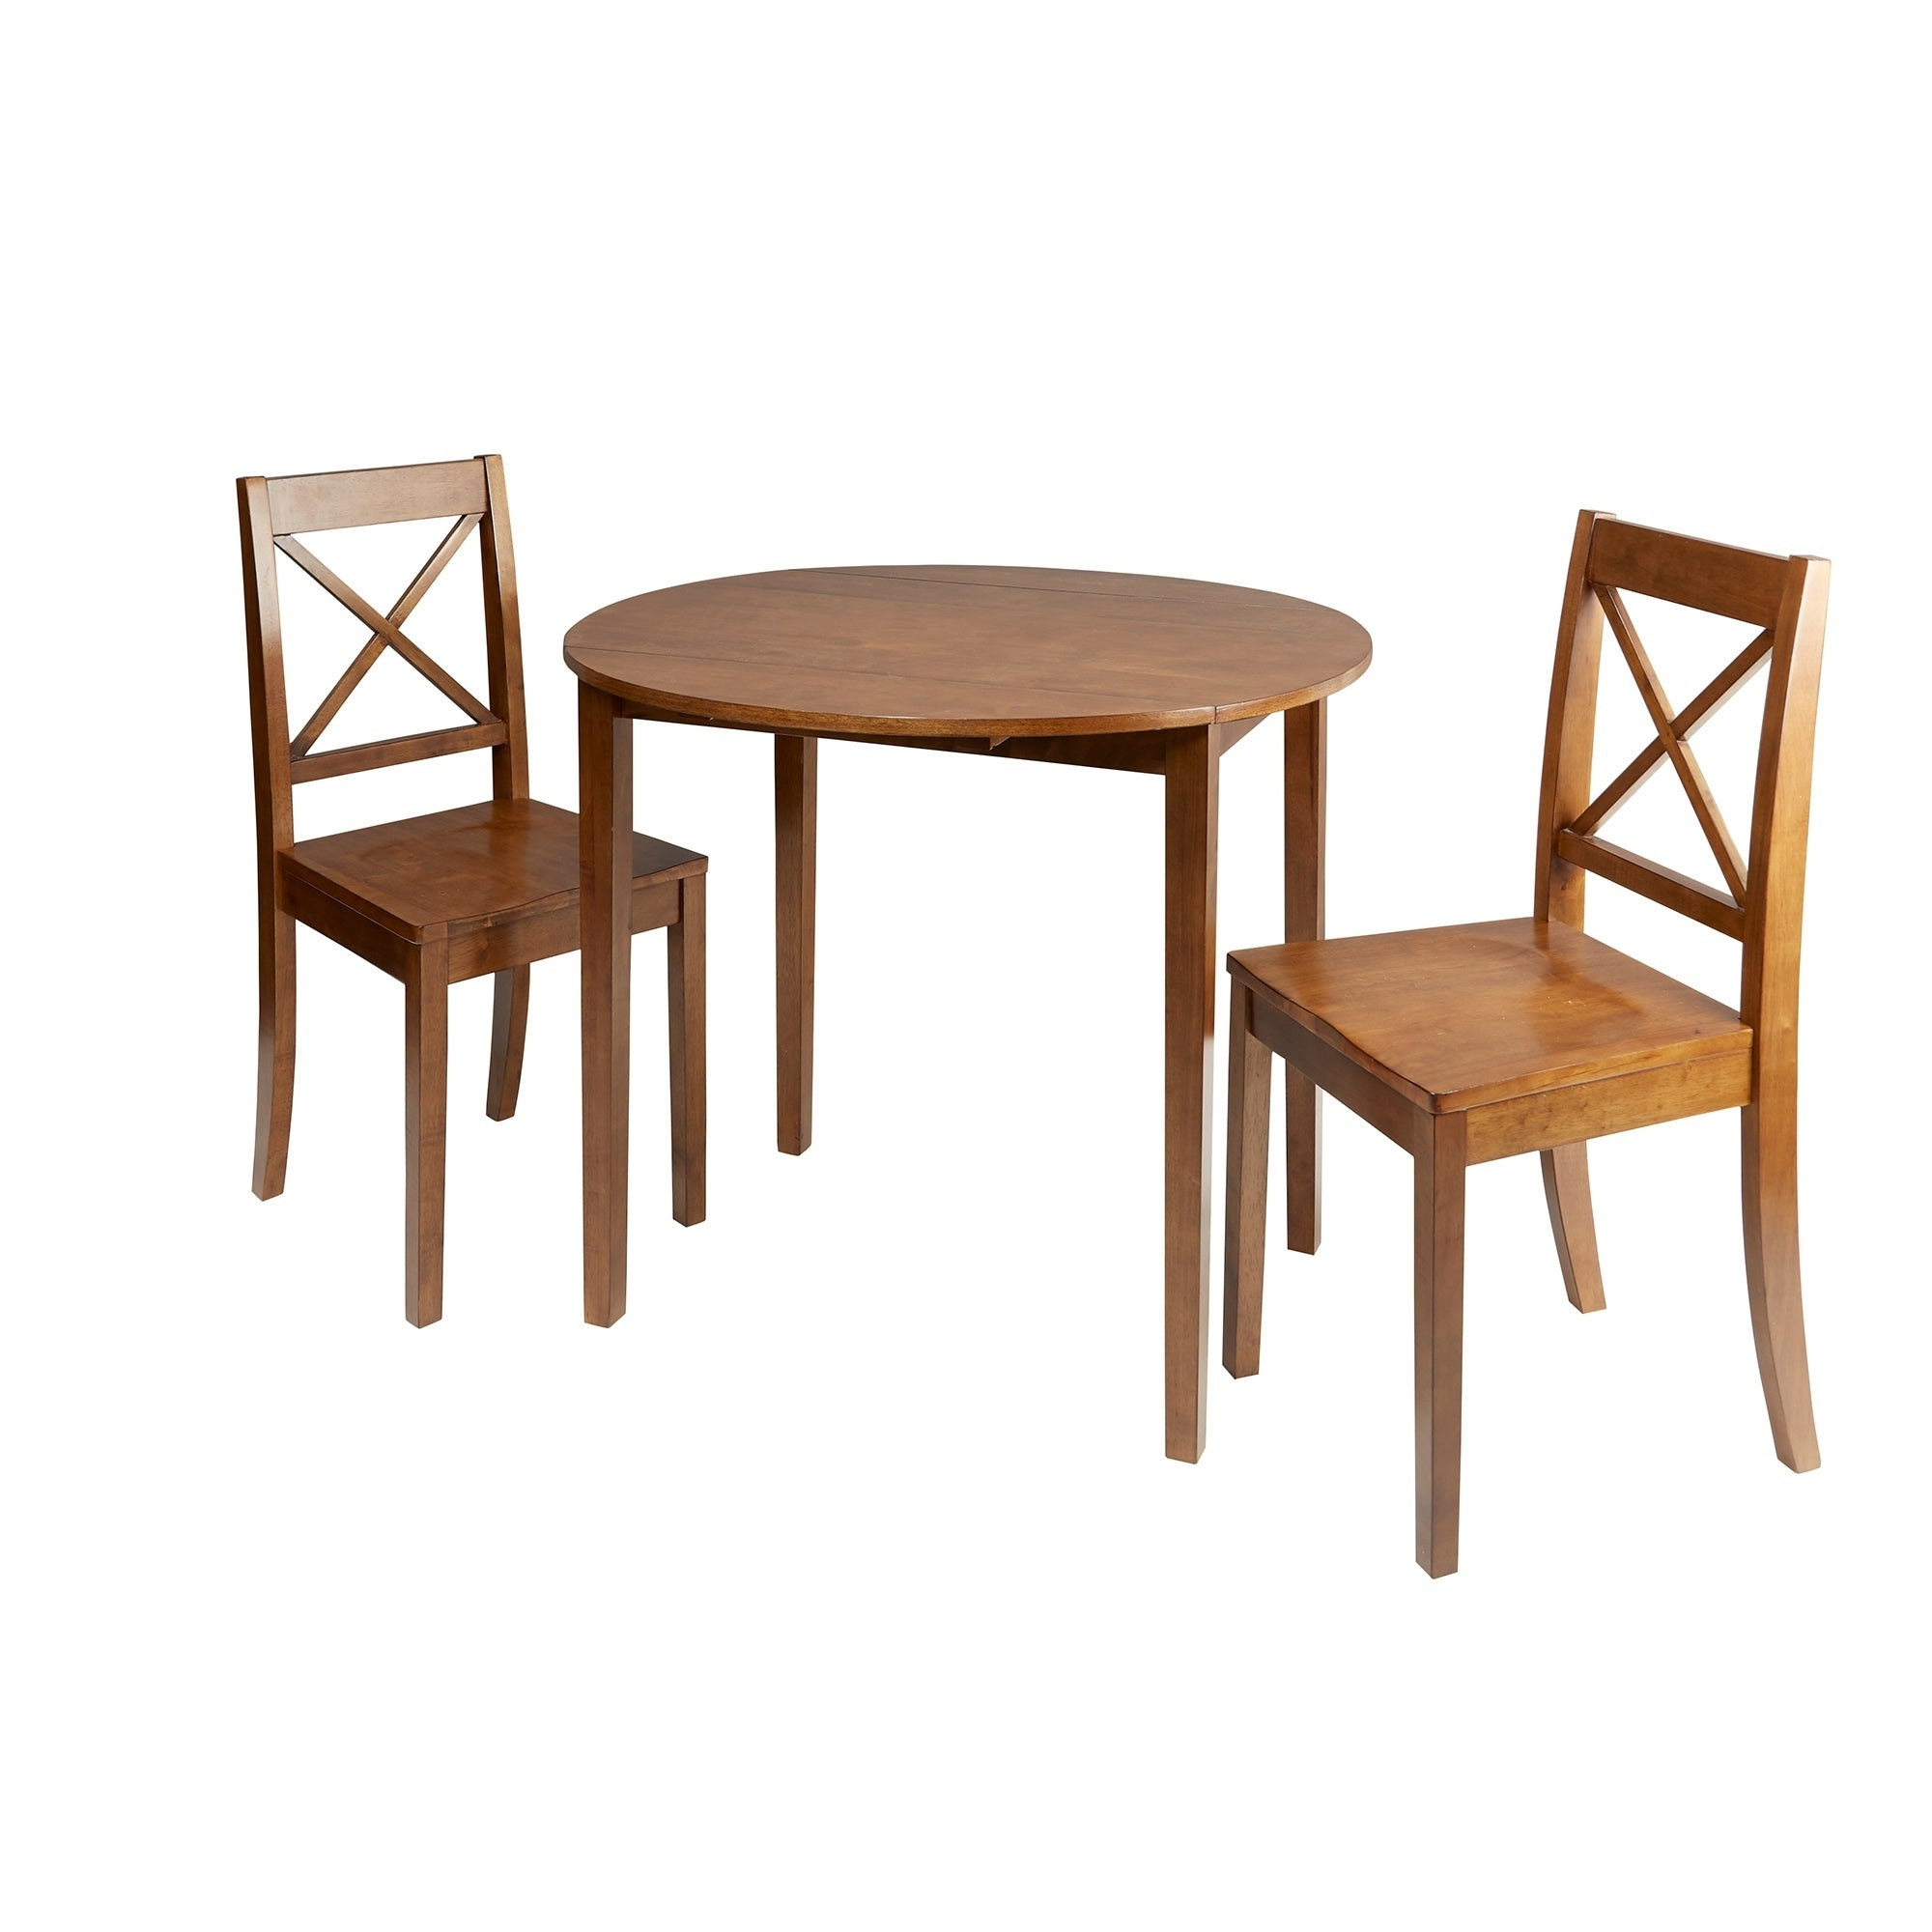 Widely Used Murphy 3 Piece Drop Leaf Dining Set For Transitional 3 Piece Drop Leaf Casual Dining Tables Set (View 28 of 30)